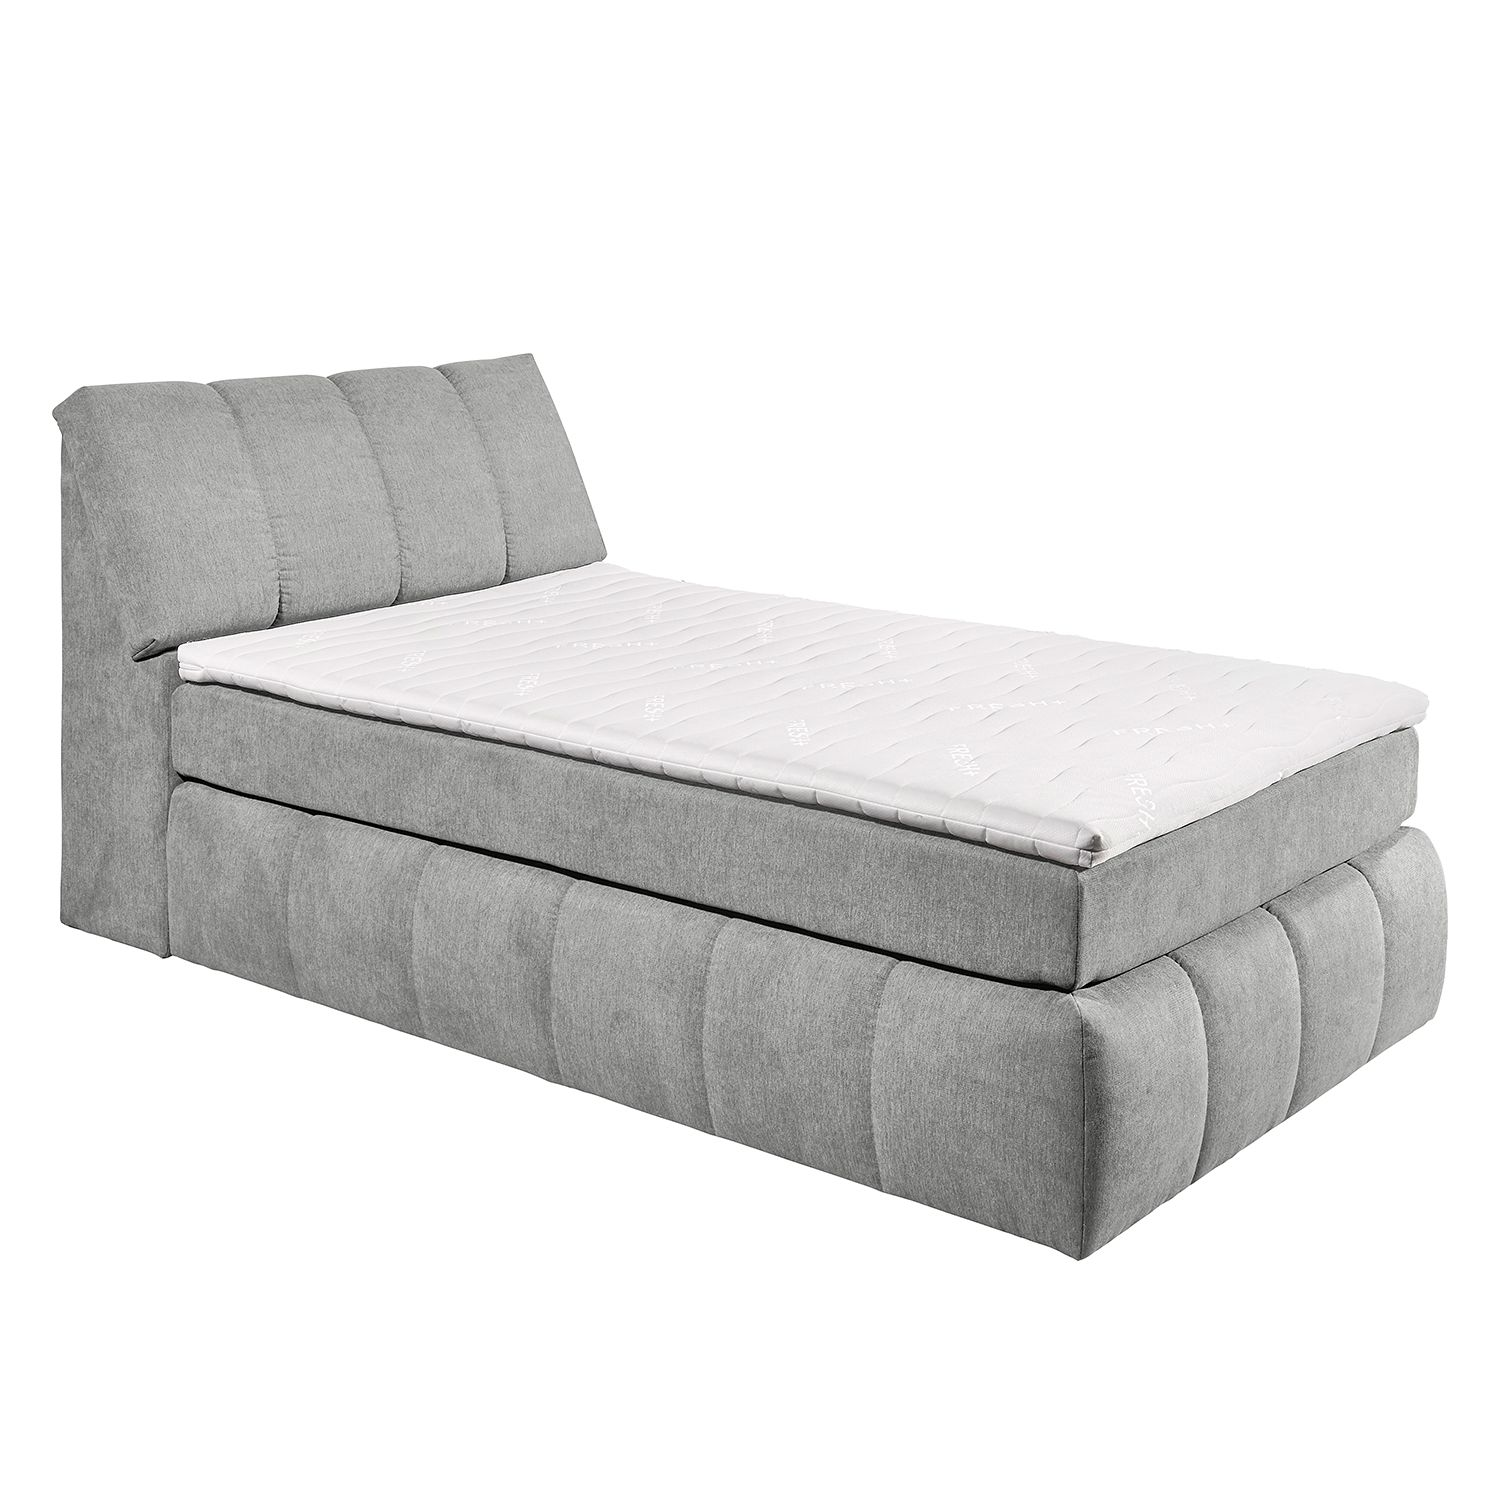 lit boxspring fenor avec coffre de lit tissu gris lumineux loftscape miropc. Black Bedroom Furniture Sets. Home Design Ideas